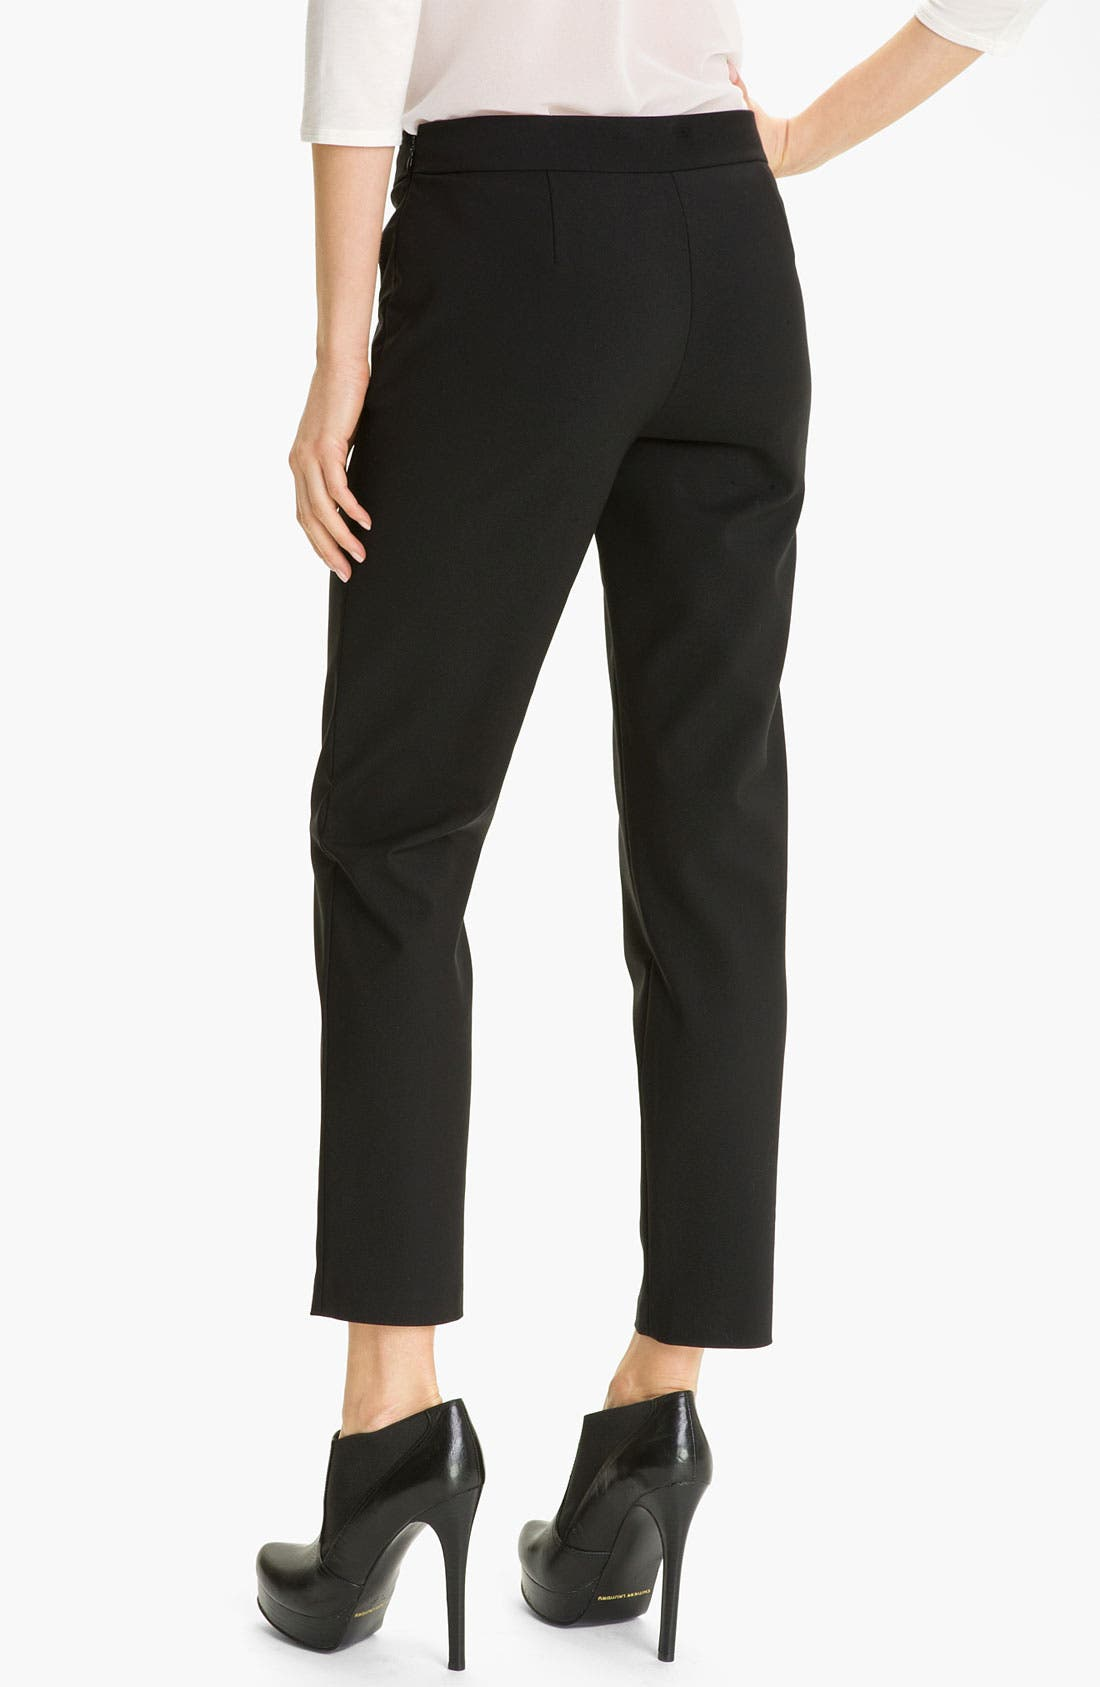 Alternate Image 2  - Kenneth Cole New York 'Chloe' Cigarette Pants (Petite)